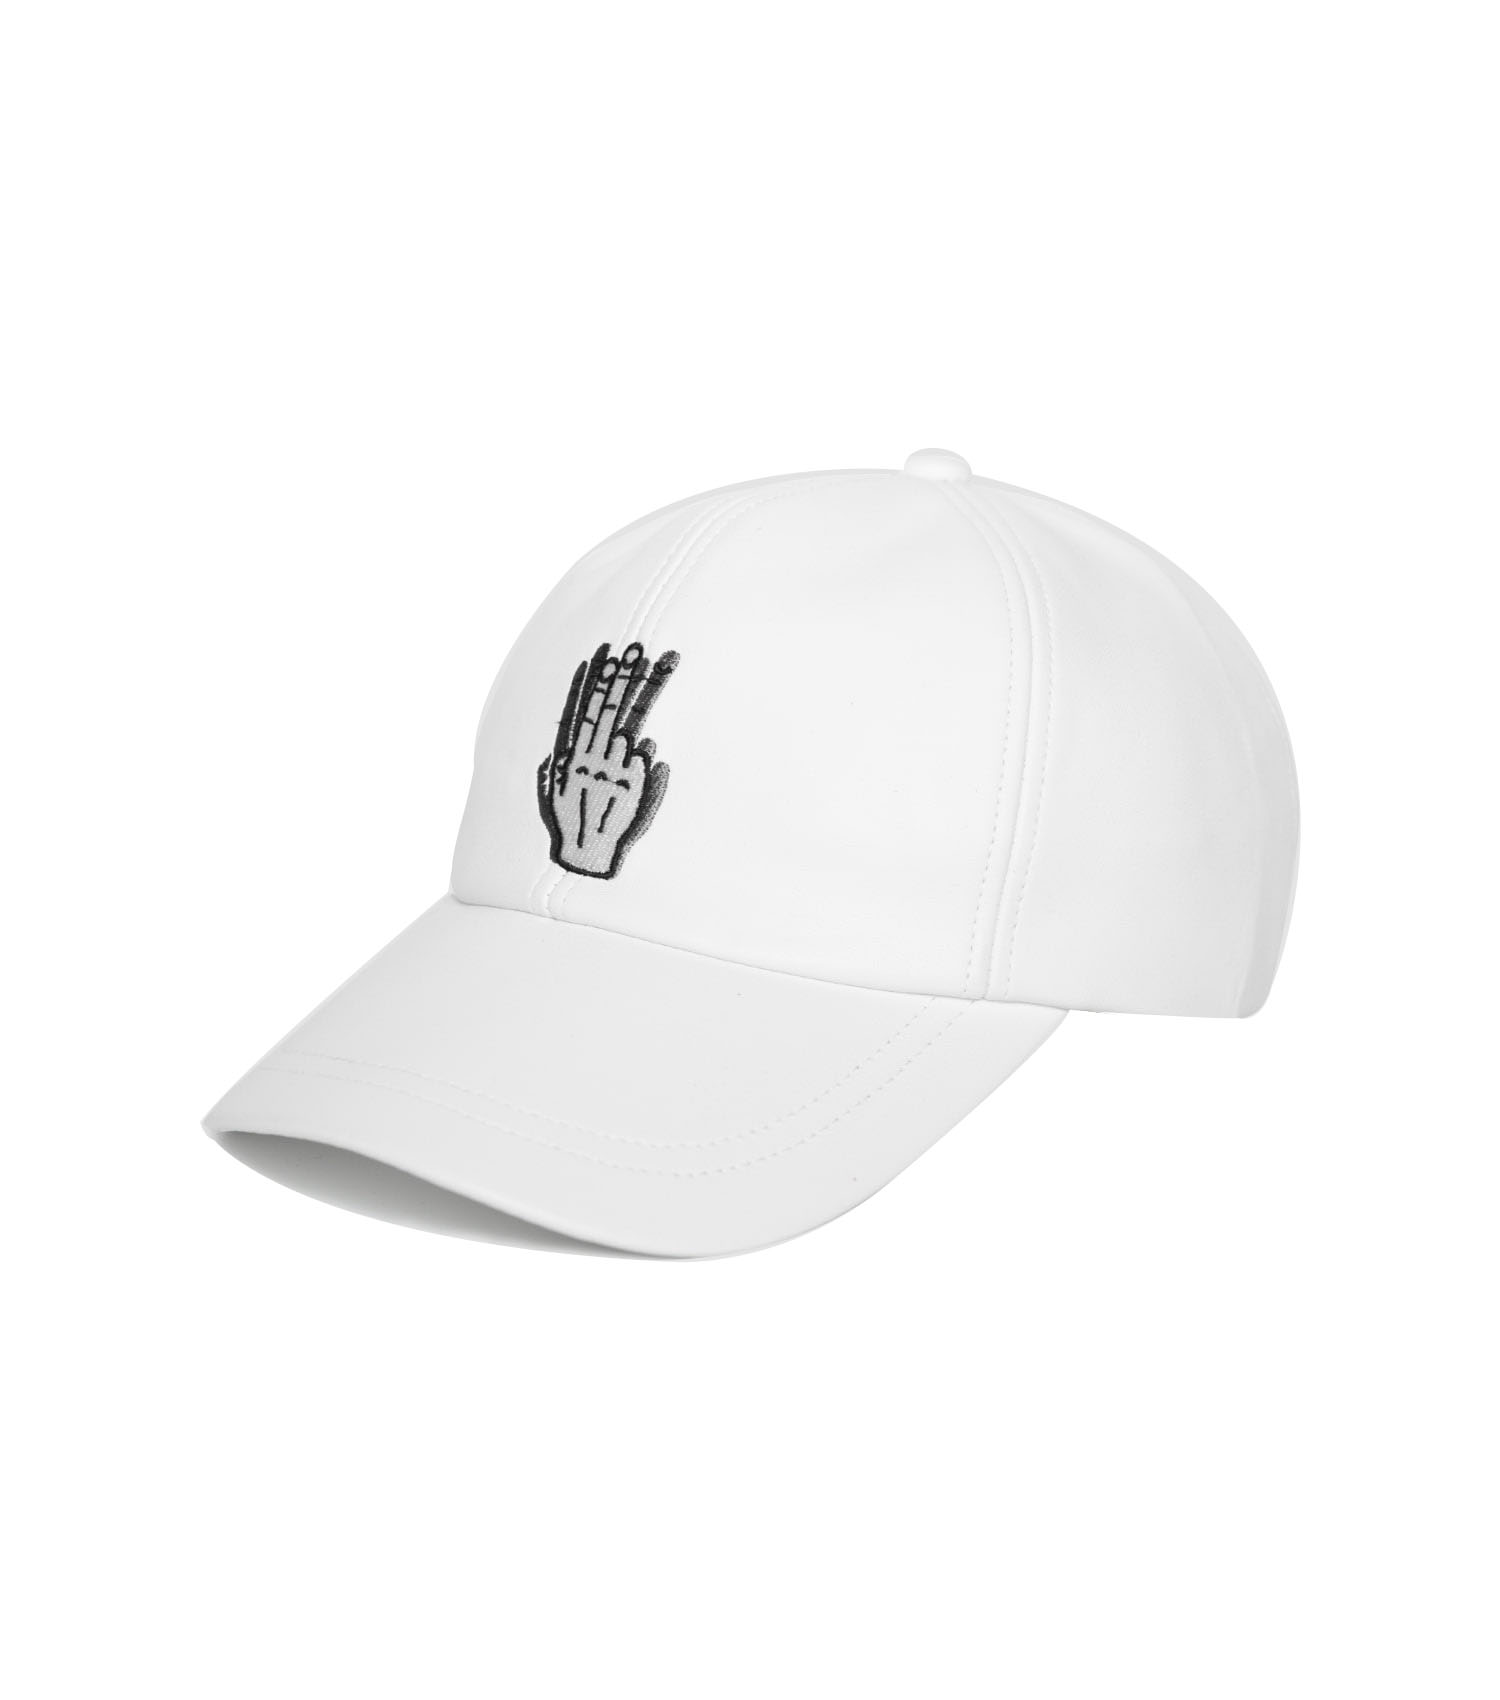 HANDSHAKE LEATHER BALL CAP (WHITE)